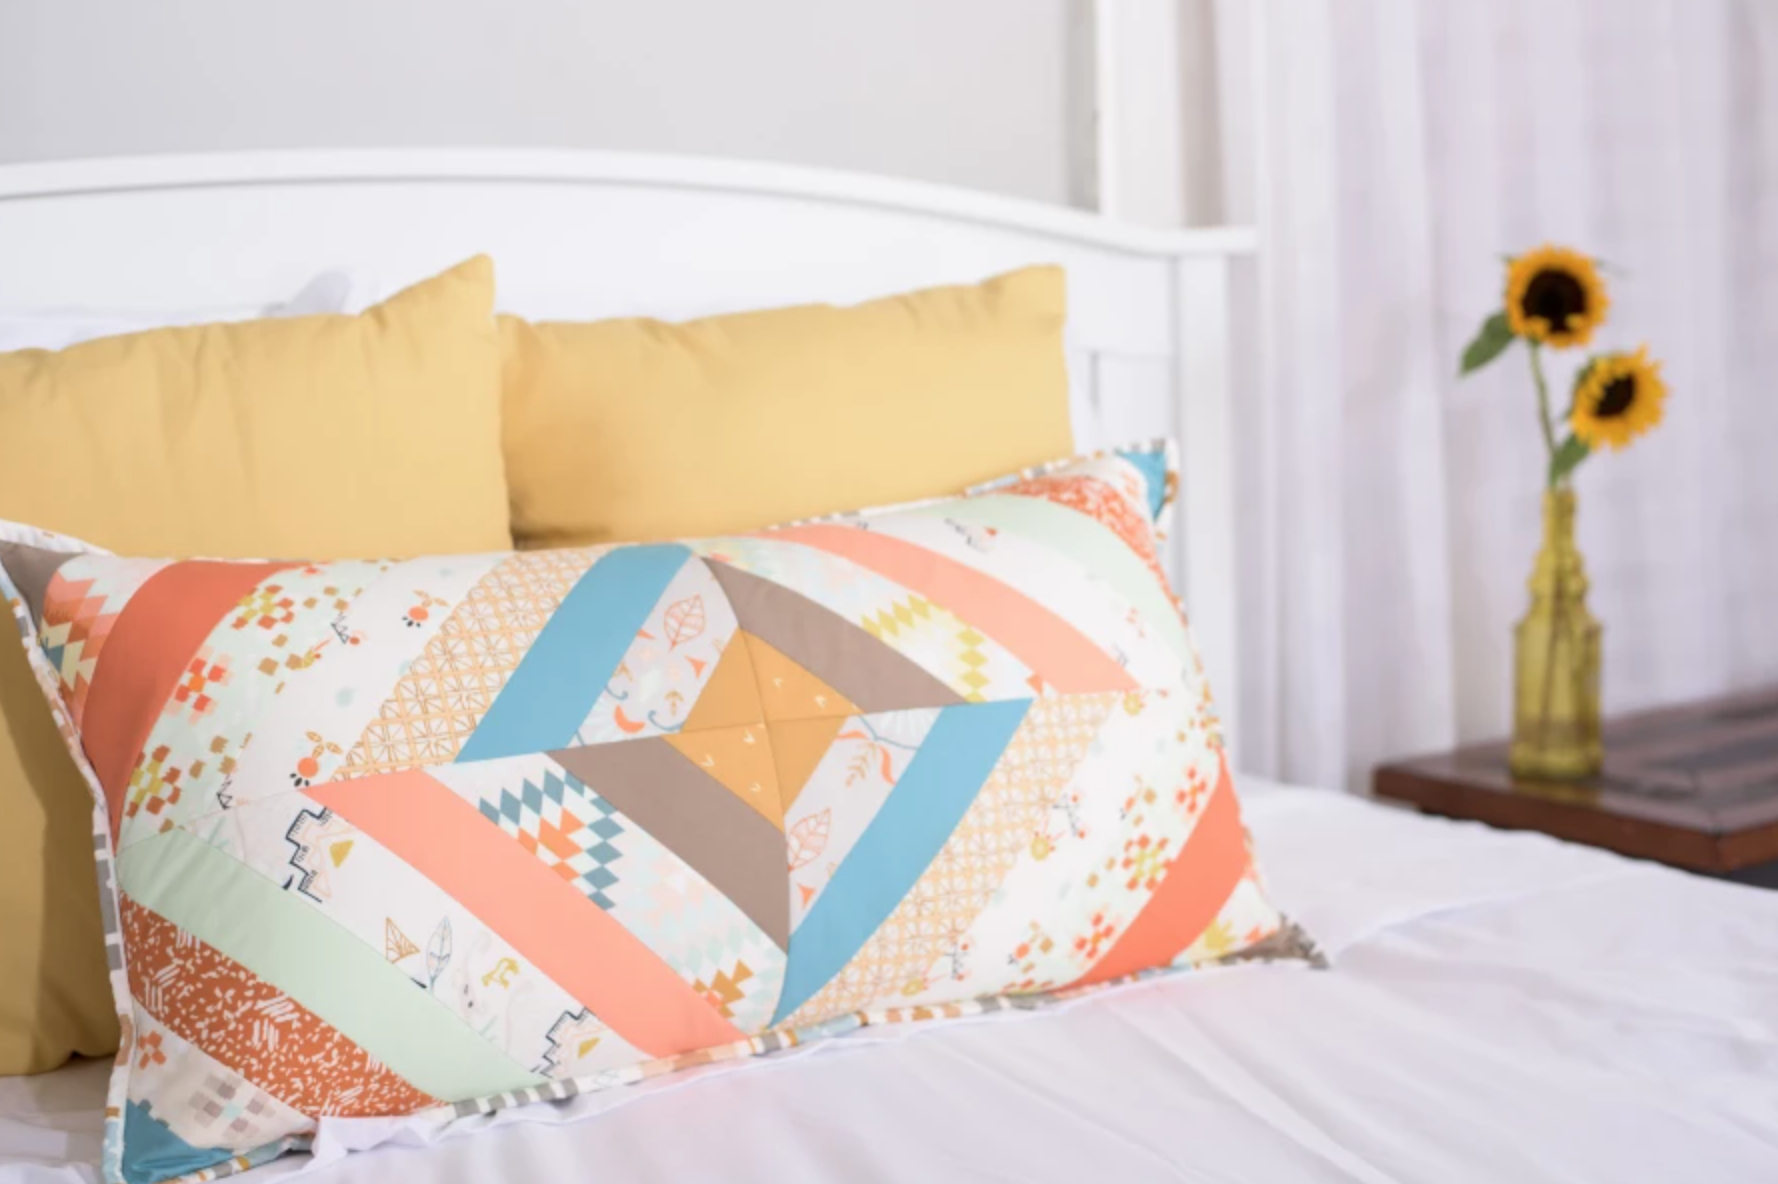 quilted pillow on a bed